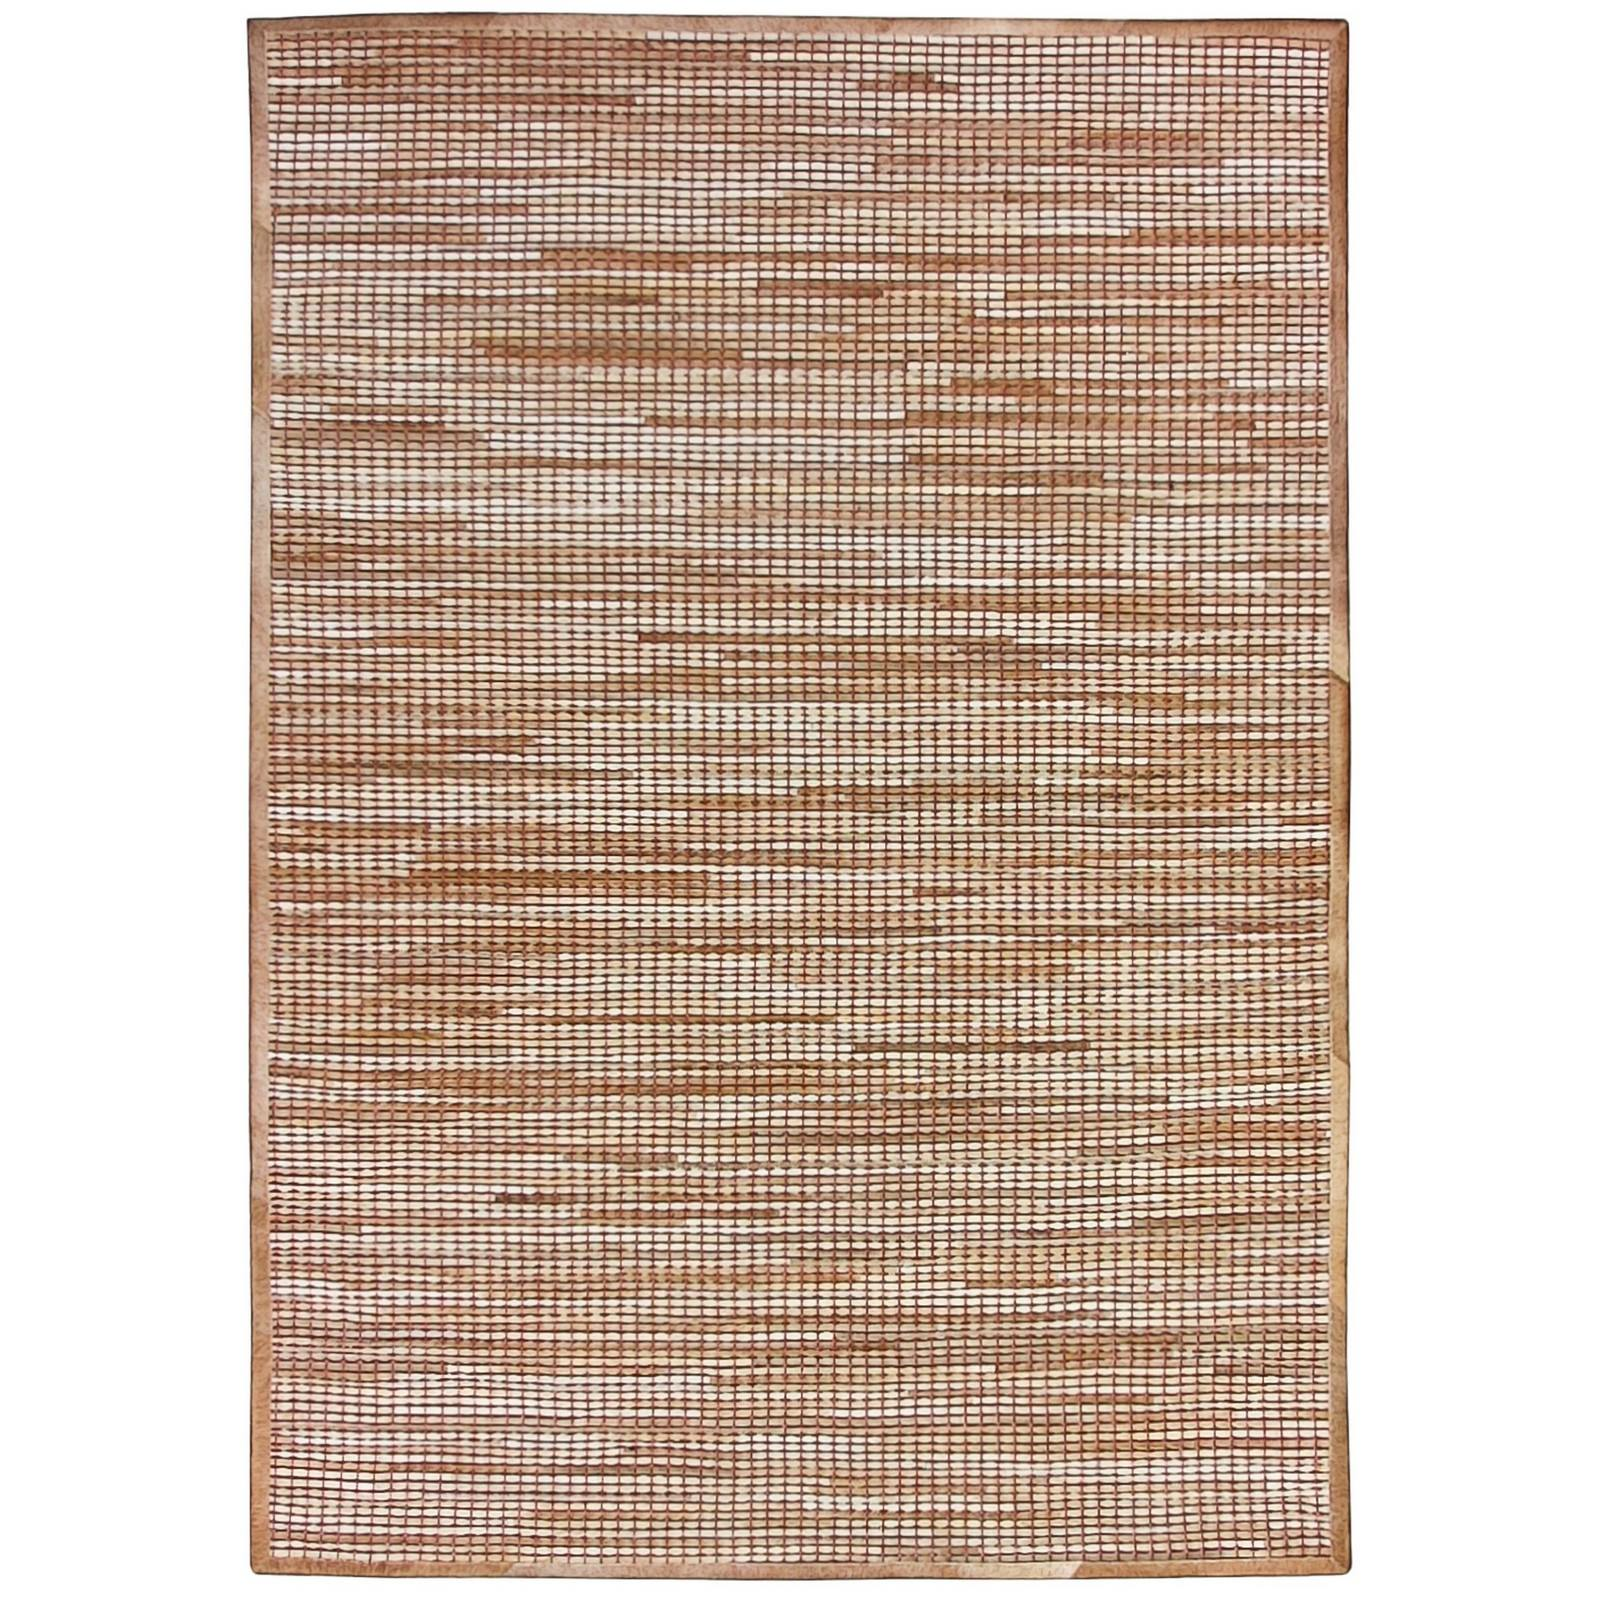 Chase Handwoven Hide & Leather Rug, 160x230cm, Natural